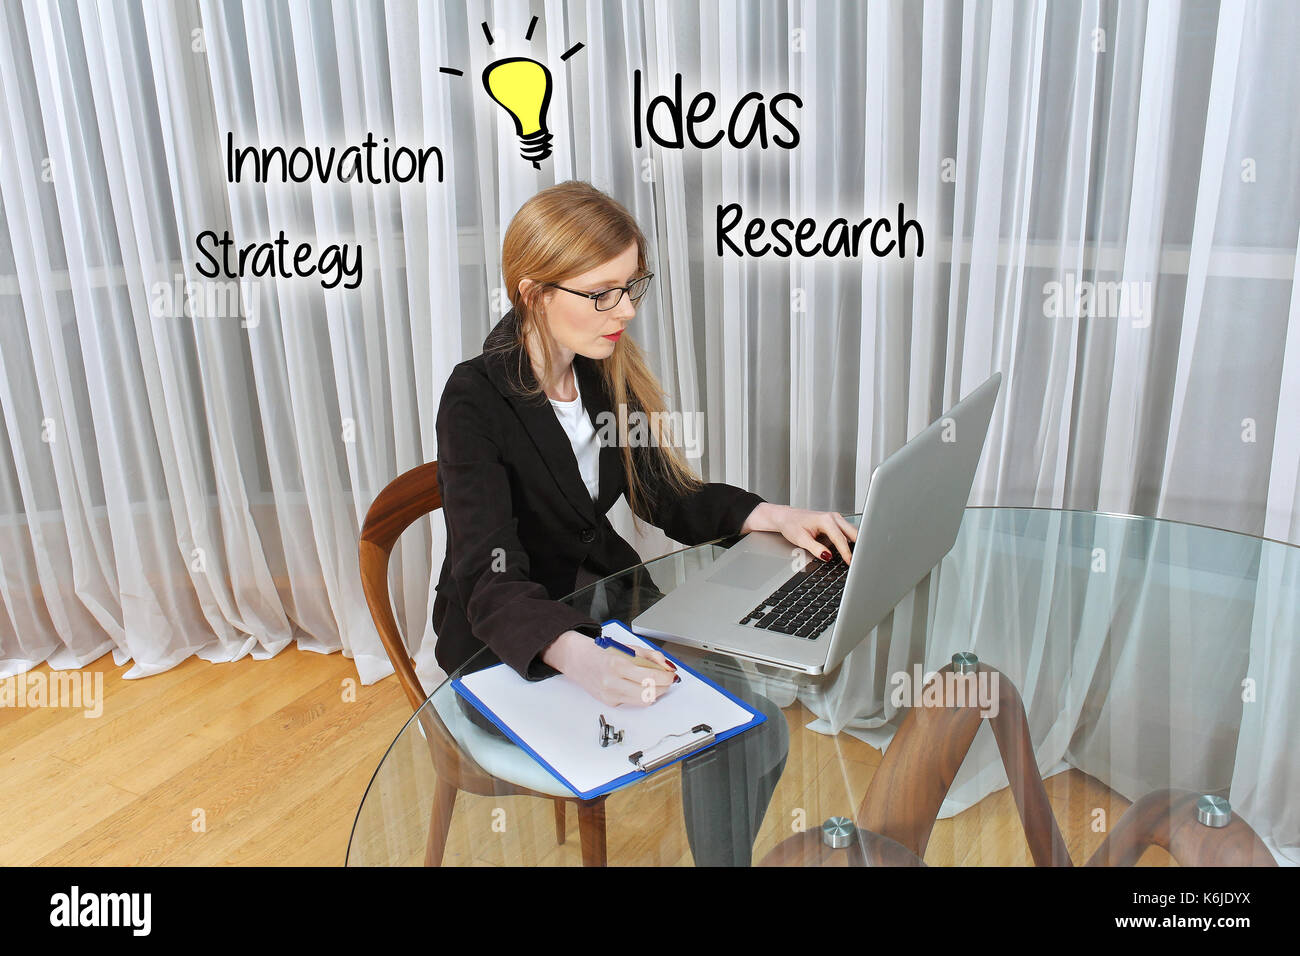 Young Woman Working On Computer With Lightbulb Ideas Drawing Over